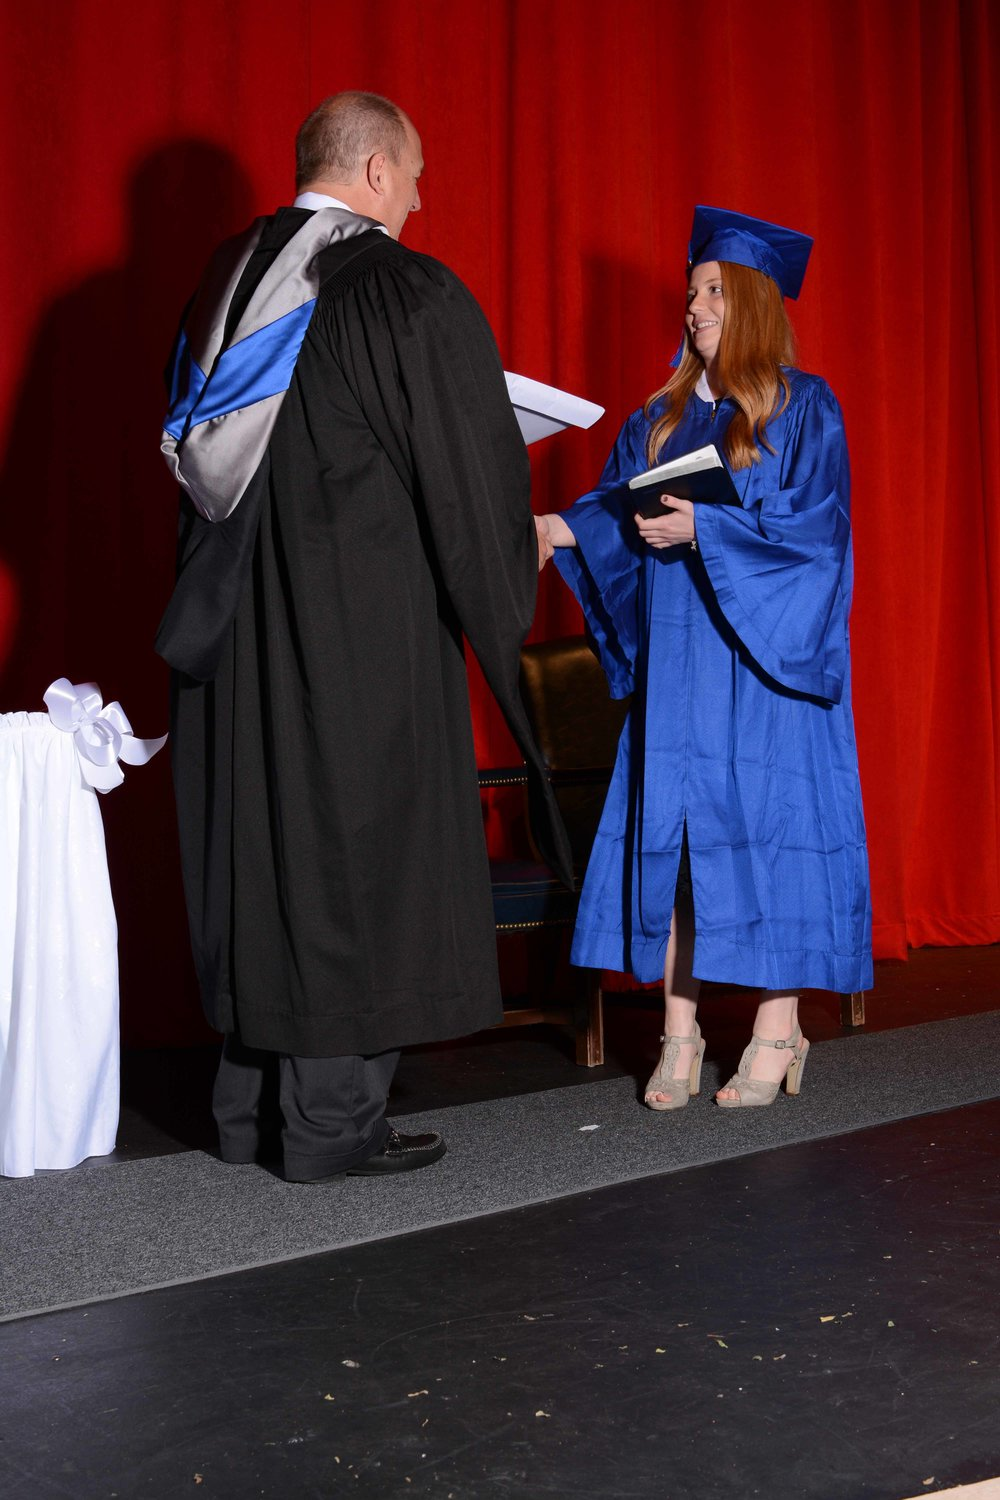 May15 HardingGraduation181.jpg